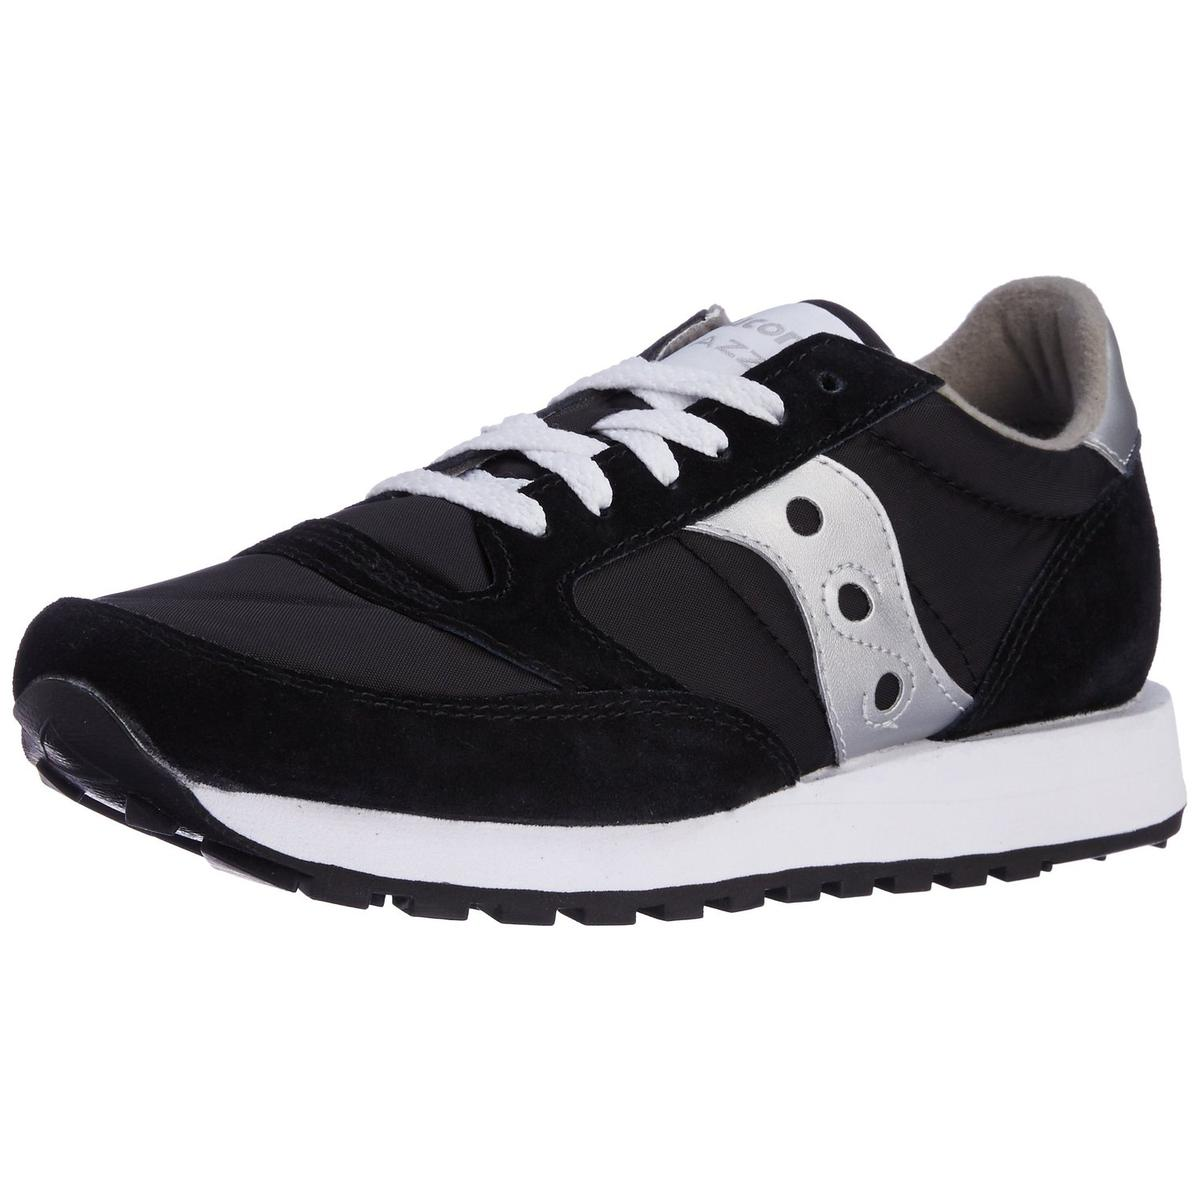 Saucony Jazz Original Mens Silver Black Sneakers by Saucony